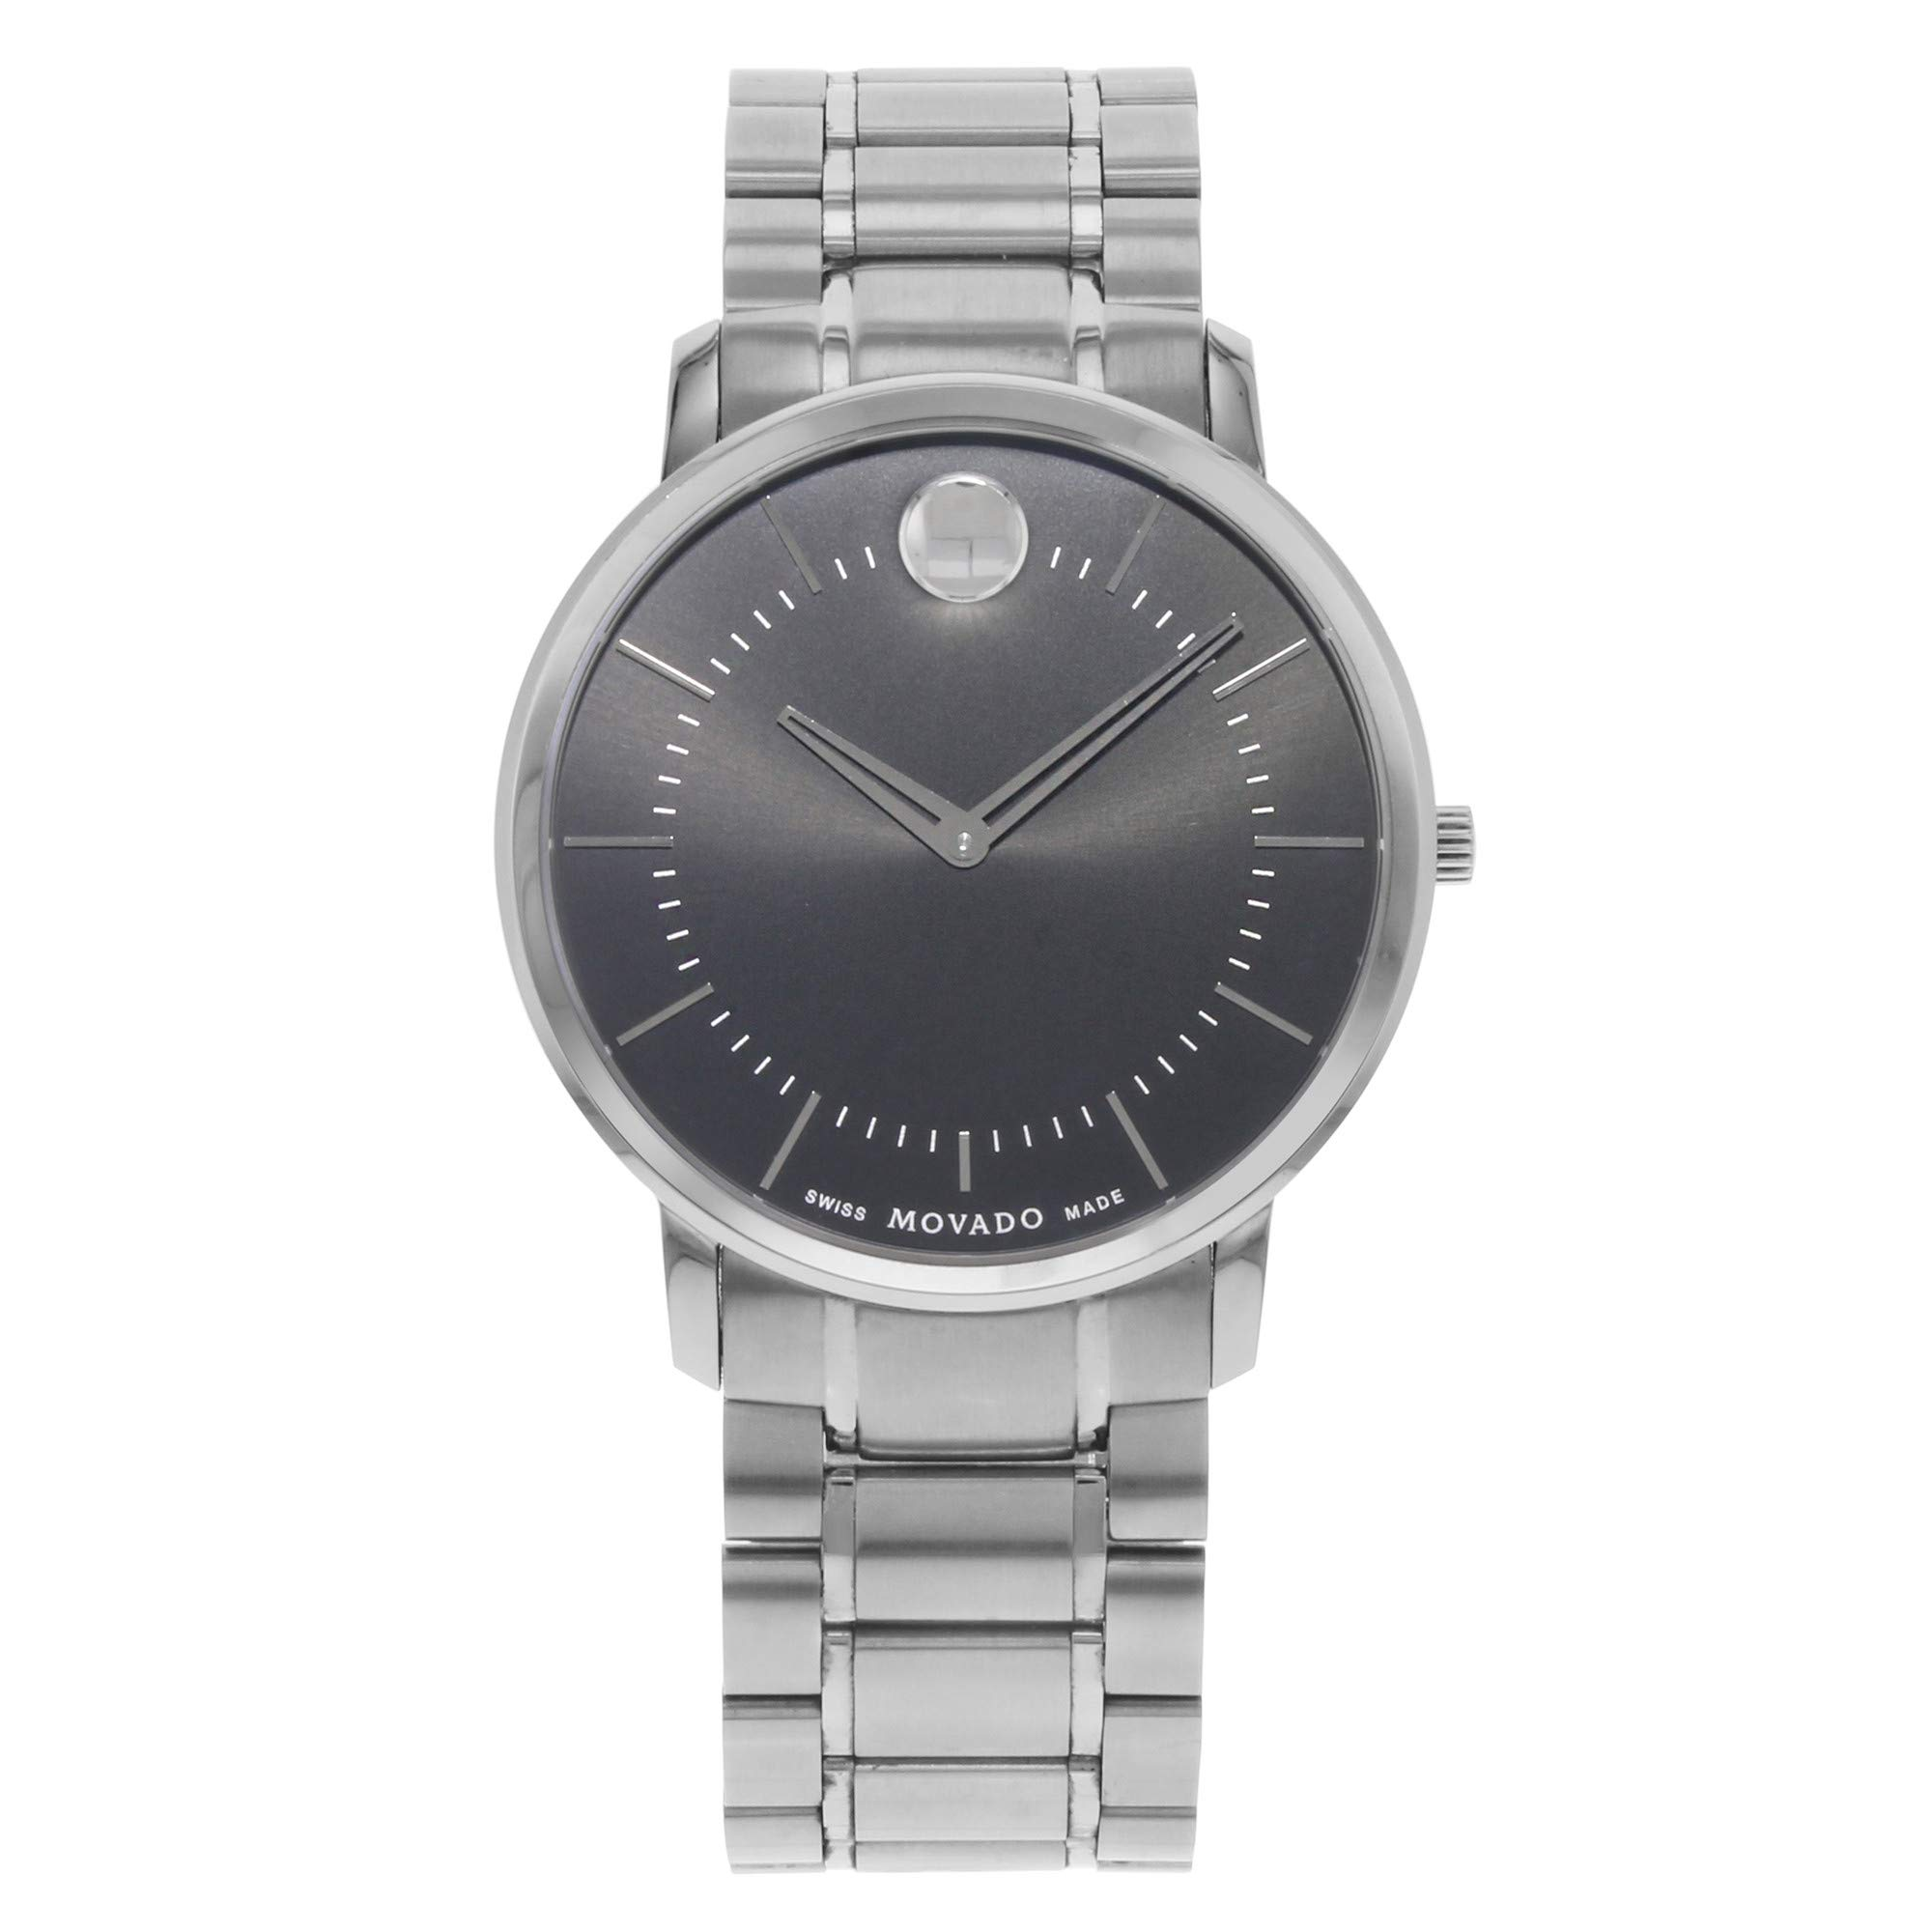 Movado Classic Quartz Male Watch 0606687 (Certified Pre-Owned)